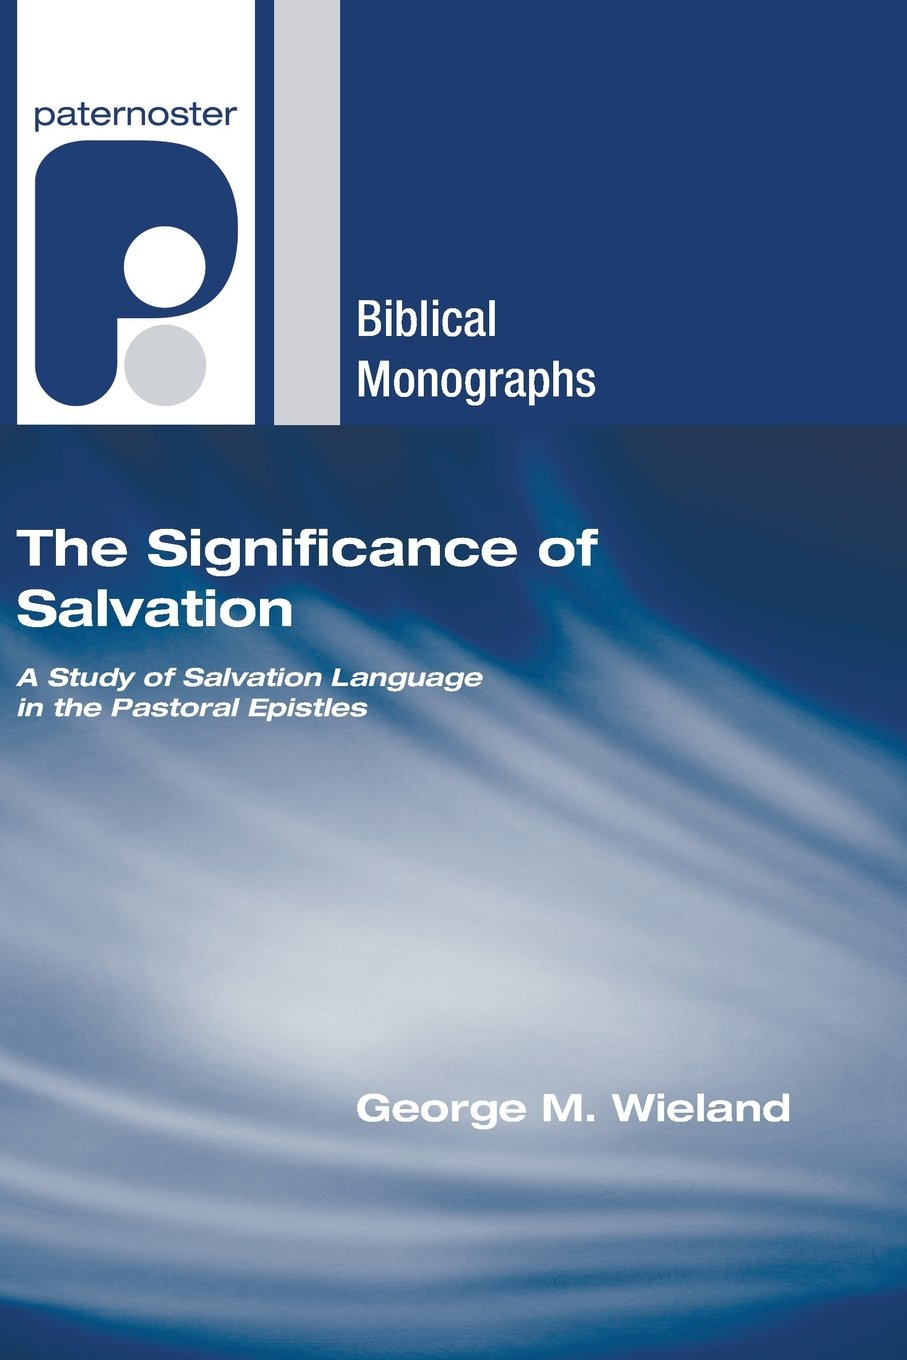 The Significance of Salvation: A Study of Salvation Language in the Pastoral Epistles (Paternoster Biblical Monographs)